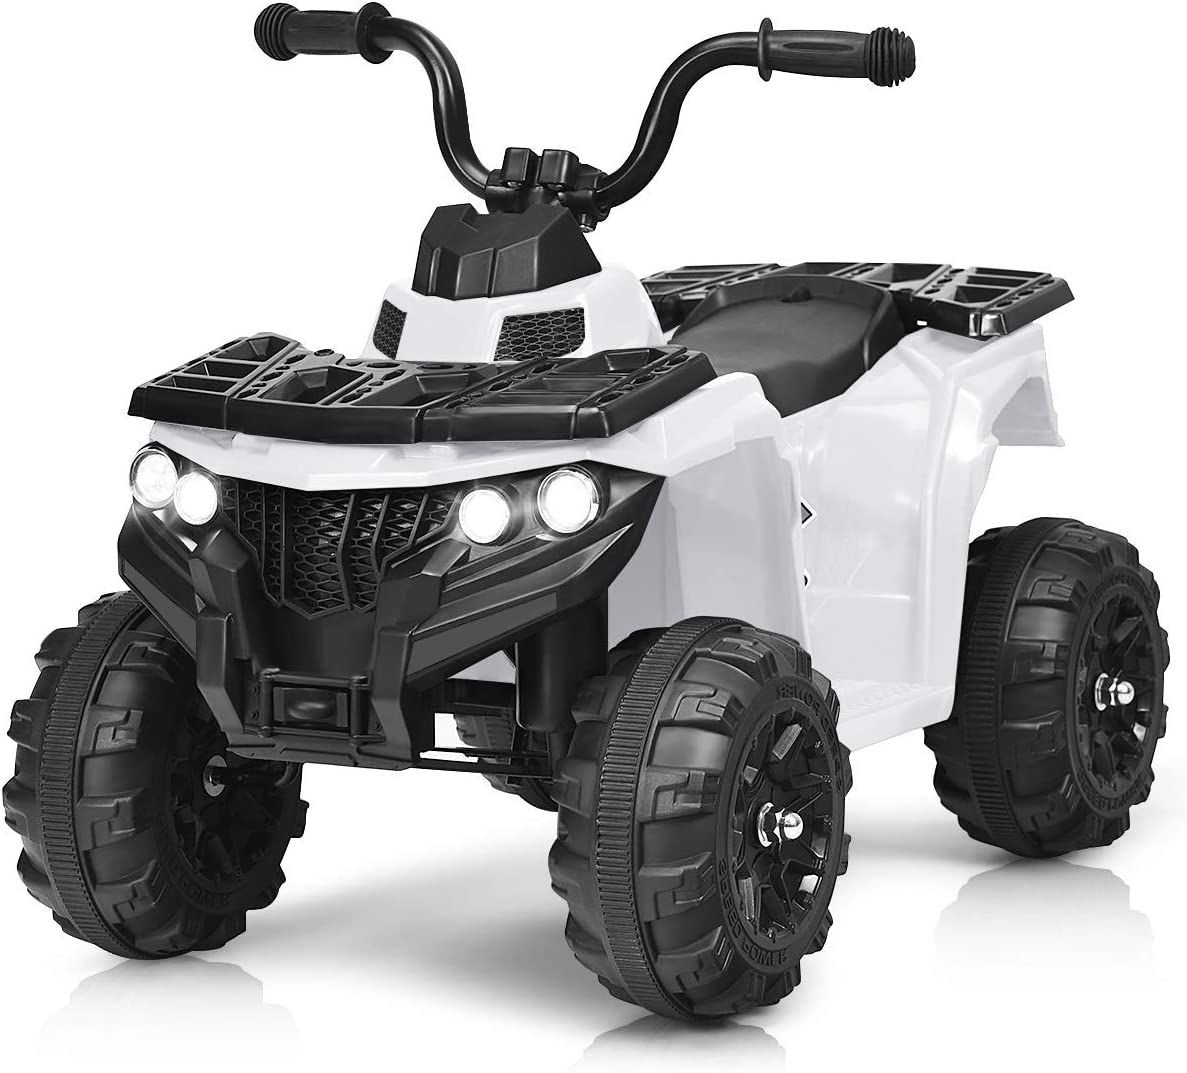 Costzon Ride on ATV, 6V Battery Powered Kids Electric Vehicle, 4 Wheeler Quad w/Headlights, MP3, USB, Volume Control